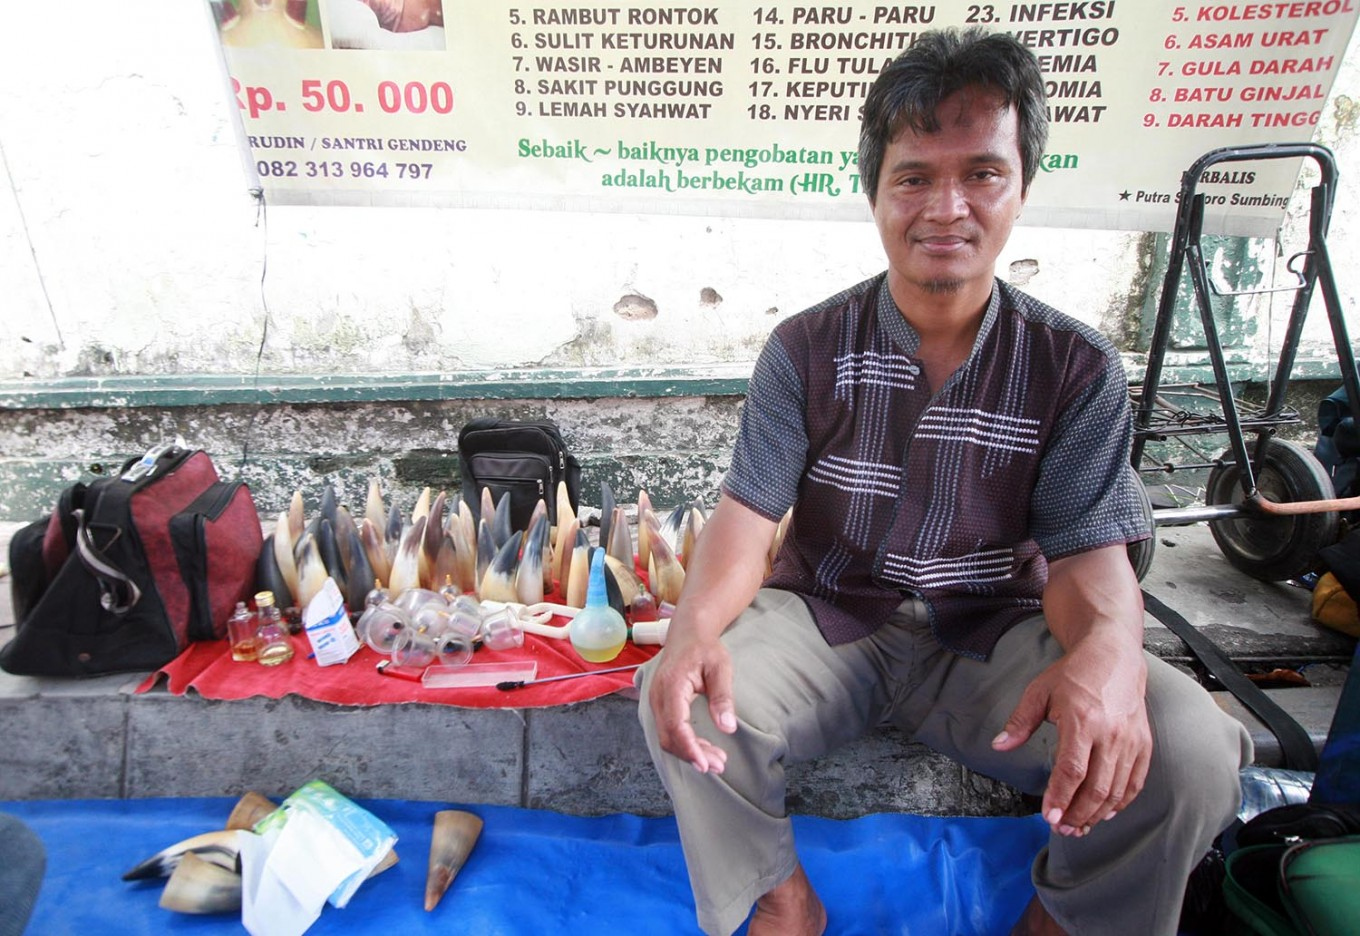 Amirudin sits in his makeshift tent at the market. He has practiced cupping therapy since he was 17 years old. JP/Boy T. Harjanto